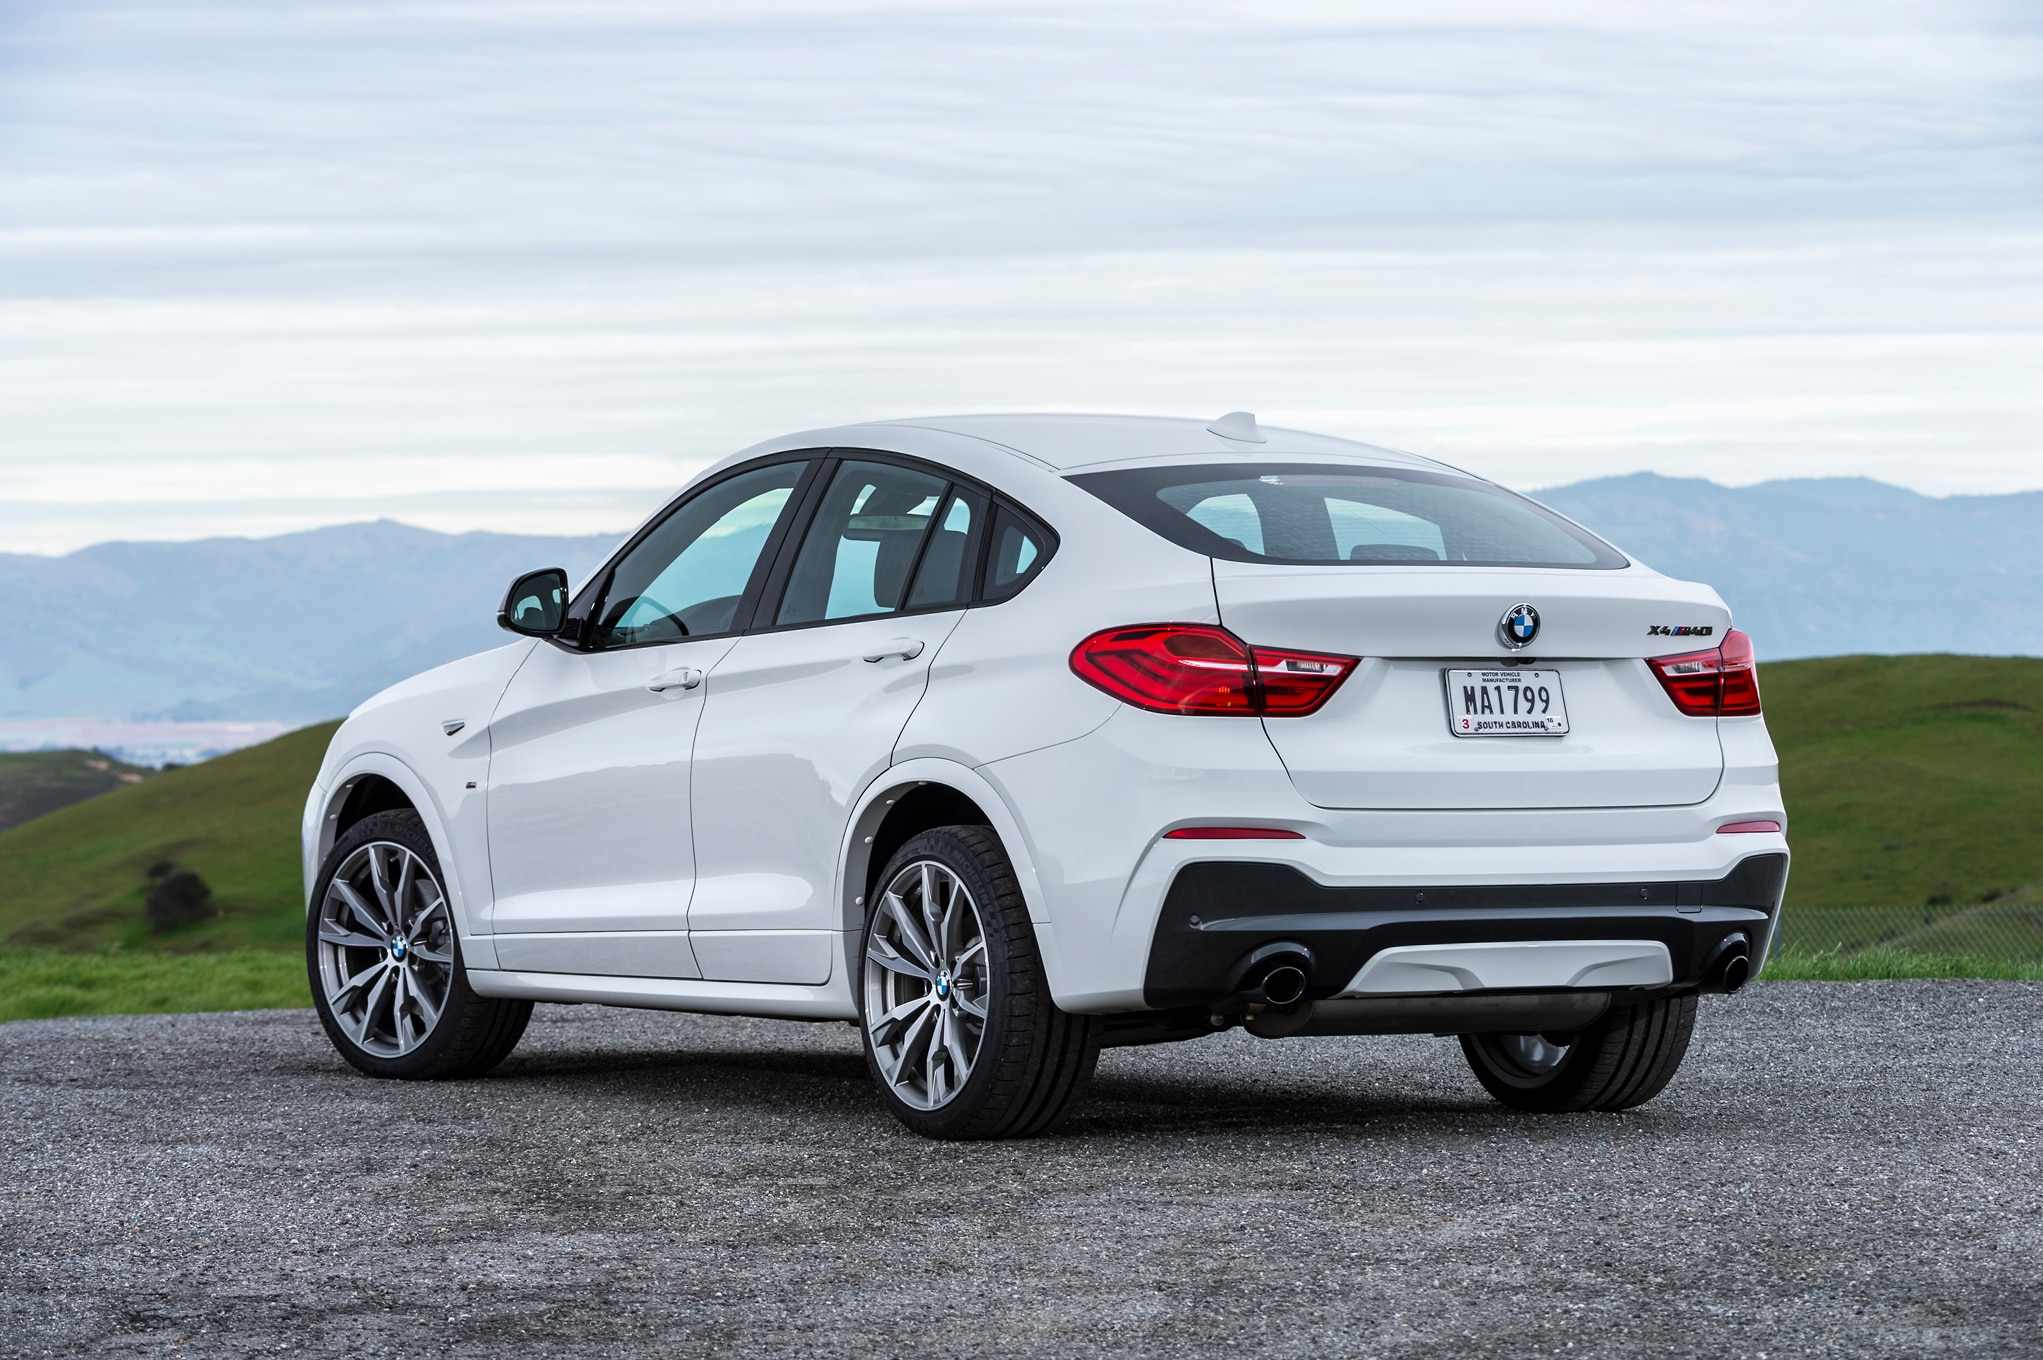 Bmw X4 Price >> 2016 BMW X4 M40i Review